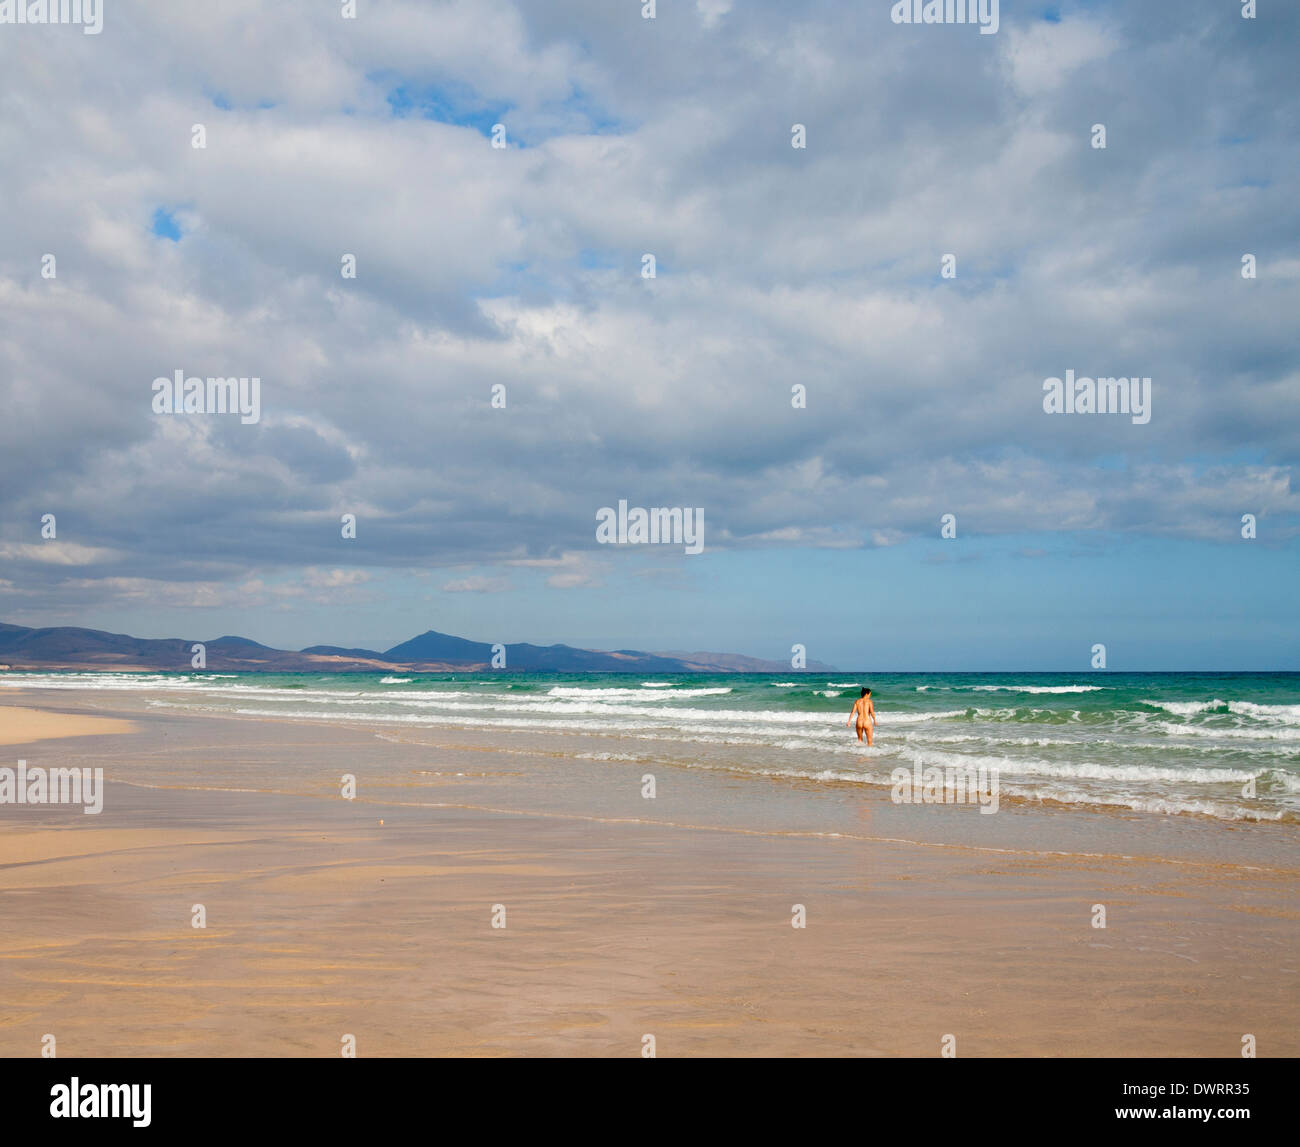 Nude Woman In Sea On Sotavento Beach Jandia Fuerteventura Canary Islands Spain